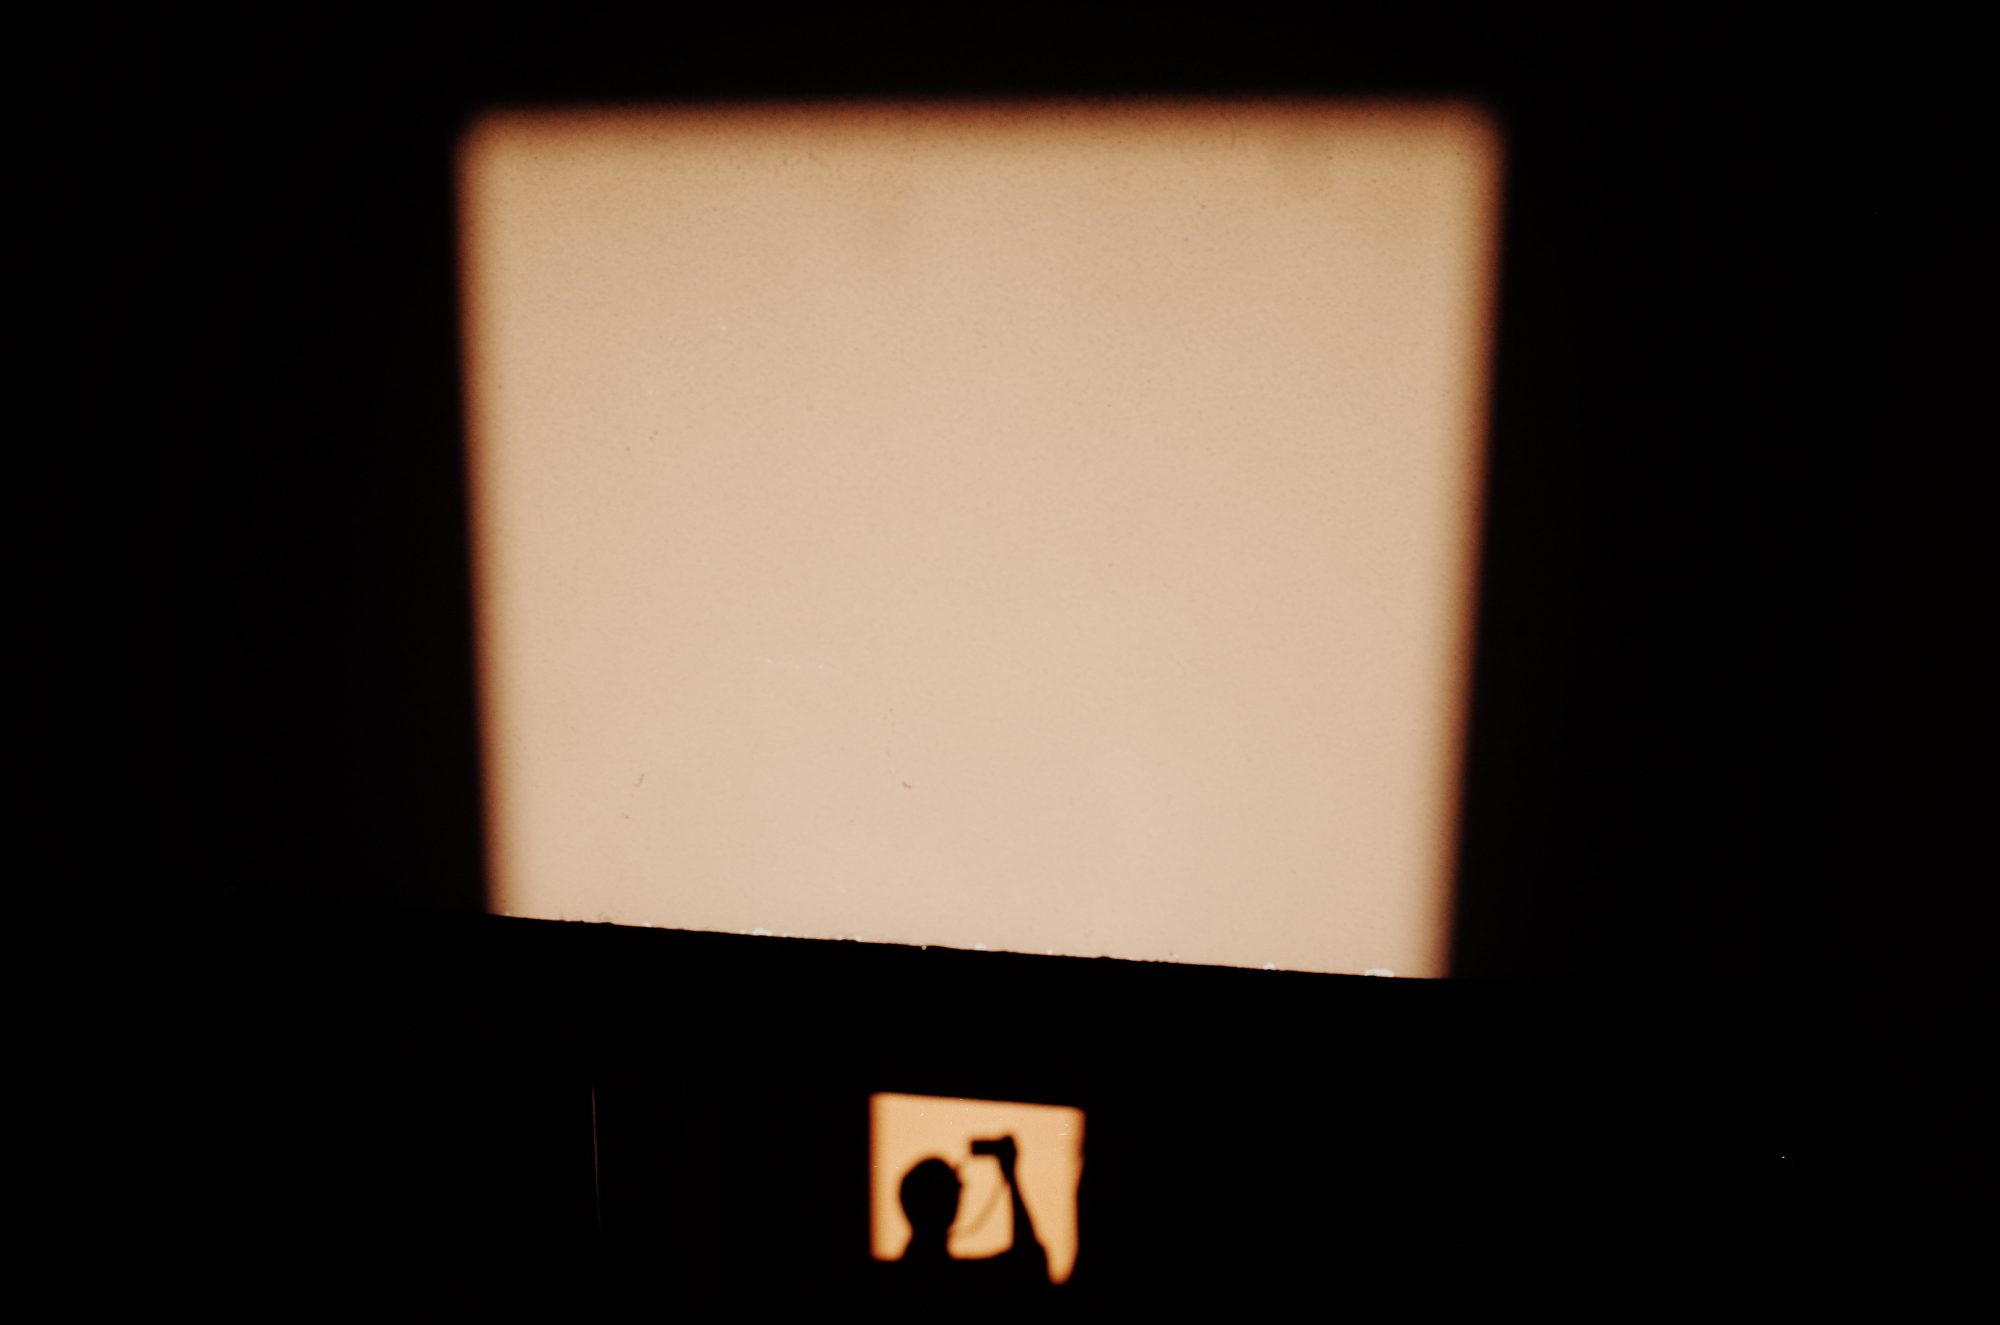 Shadow selfie, small box. Uji, 2018